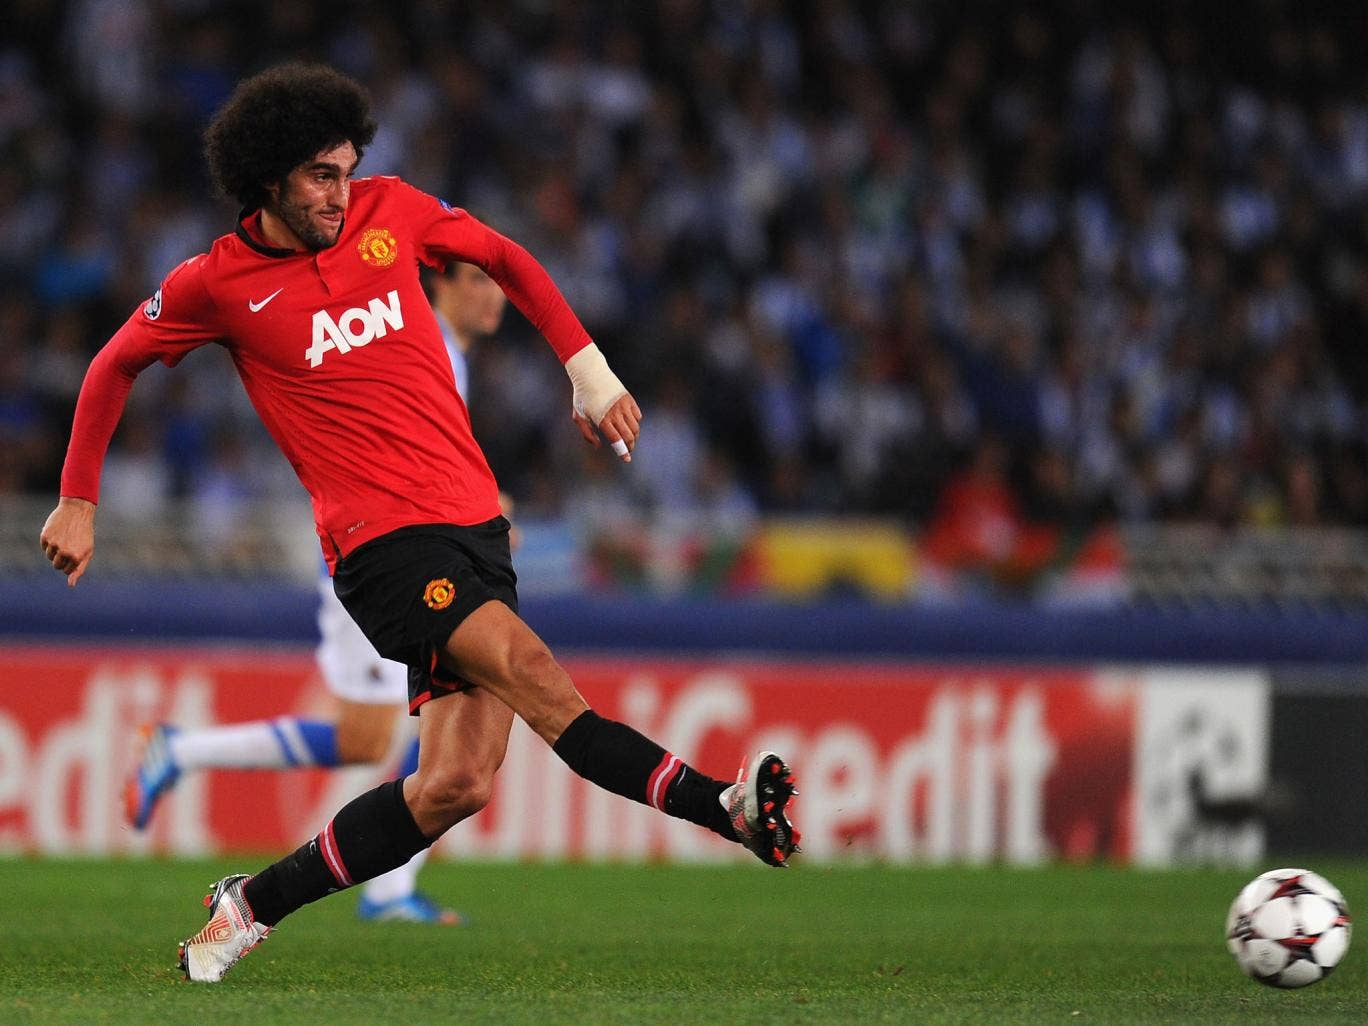 Marouane Fellaini of Manchester United in action